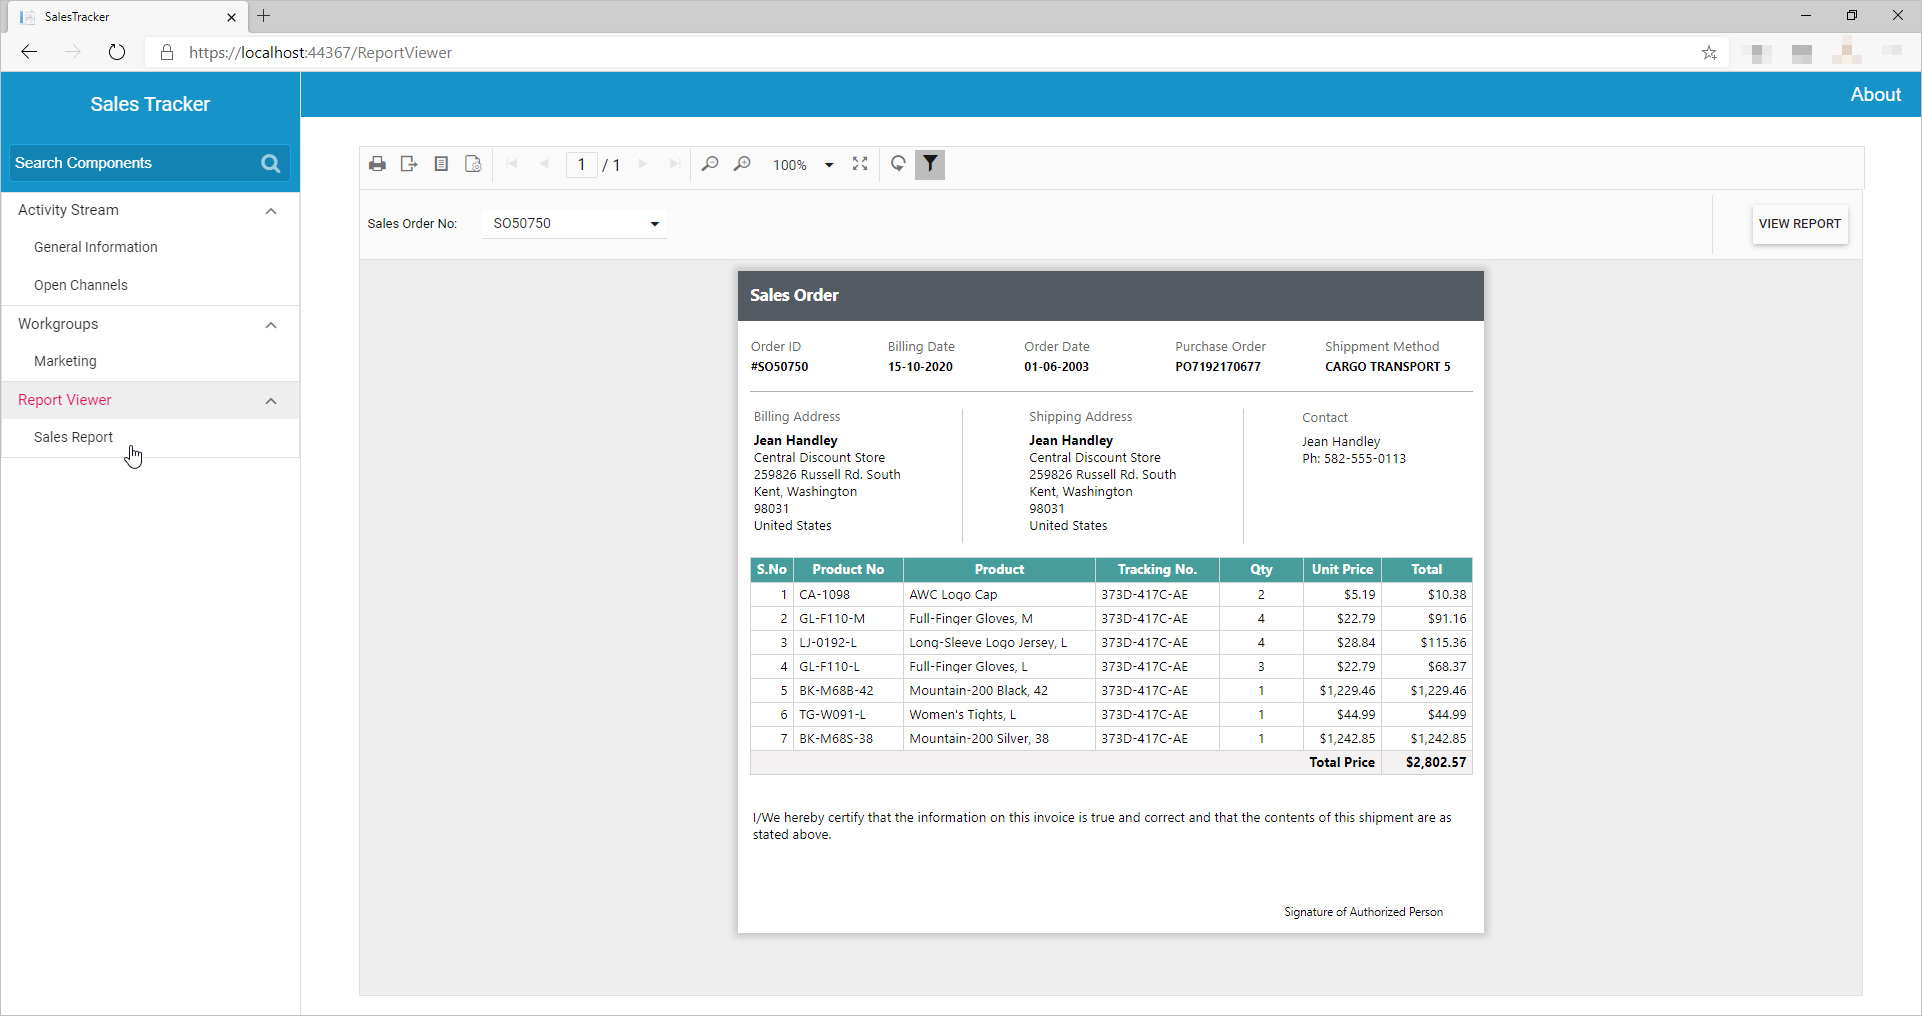 Sales Report rendered with Syncfusion Blazor Controls